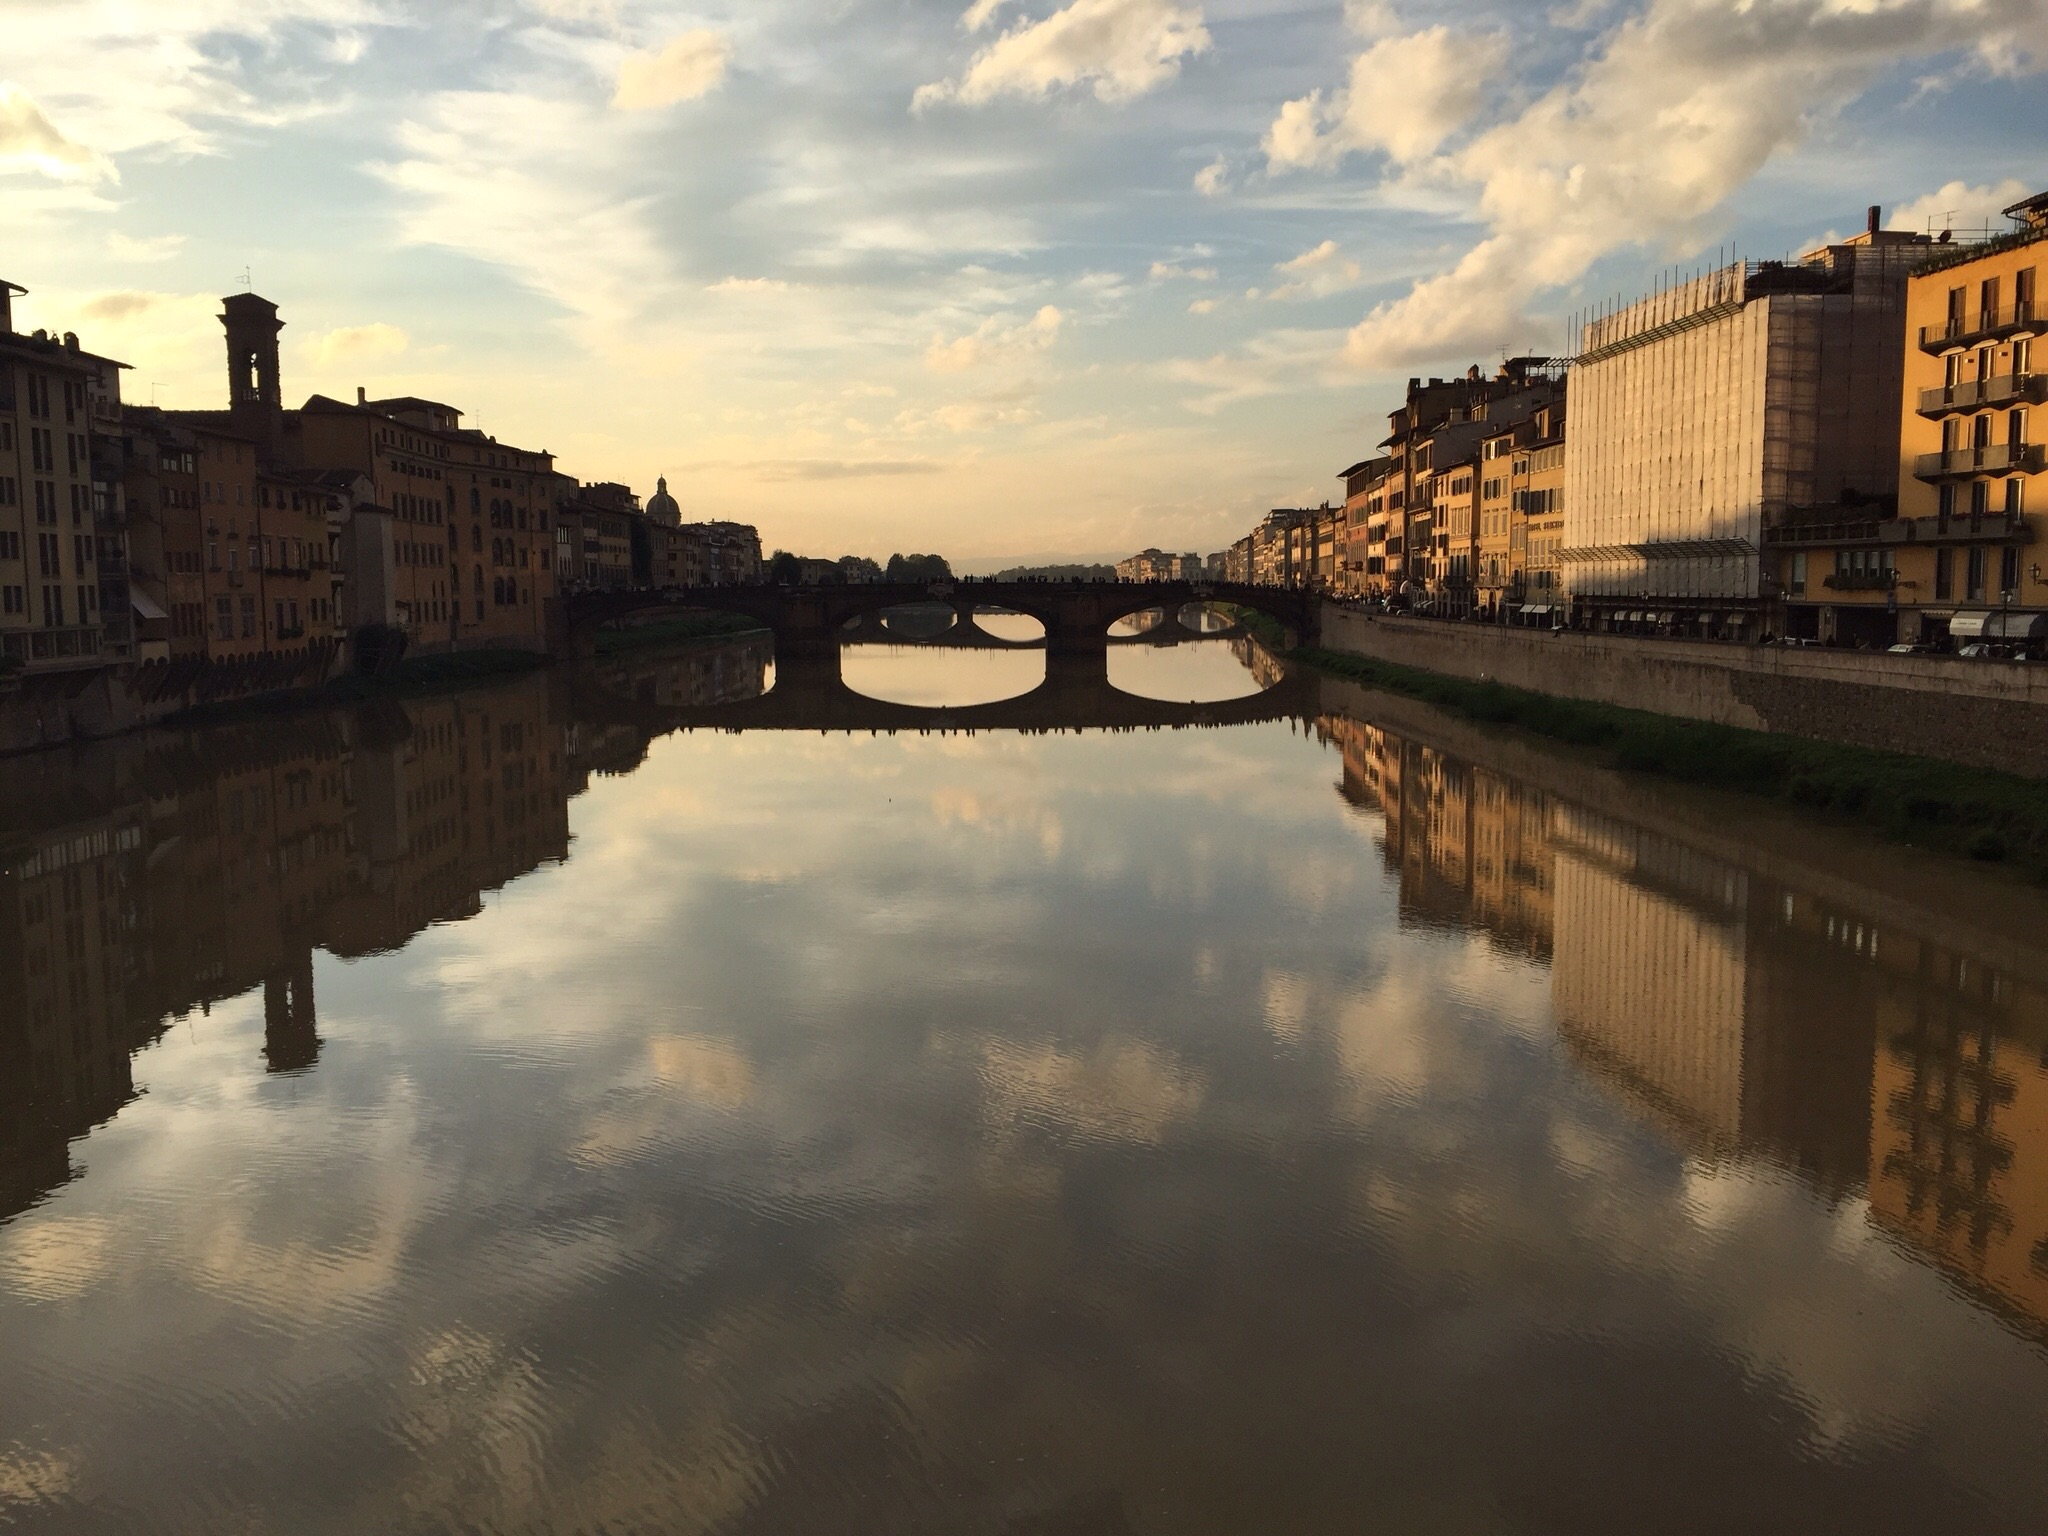 Sunset view from the Ponte Vecchio